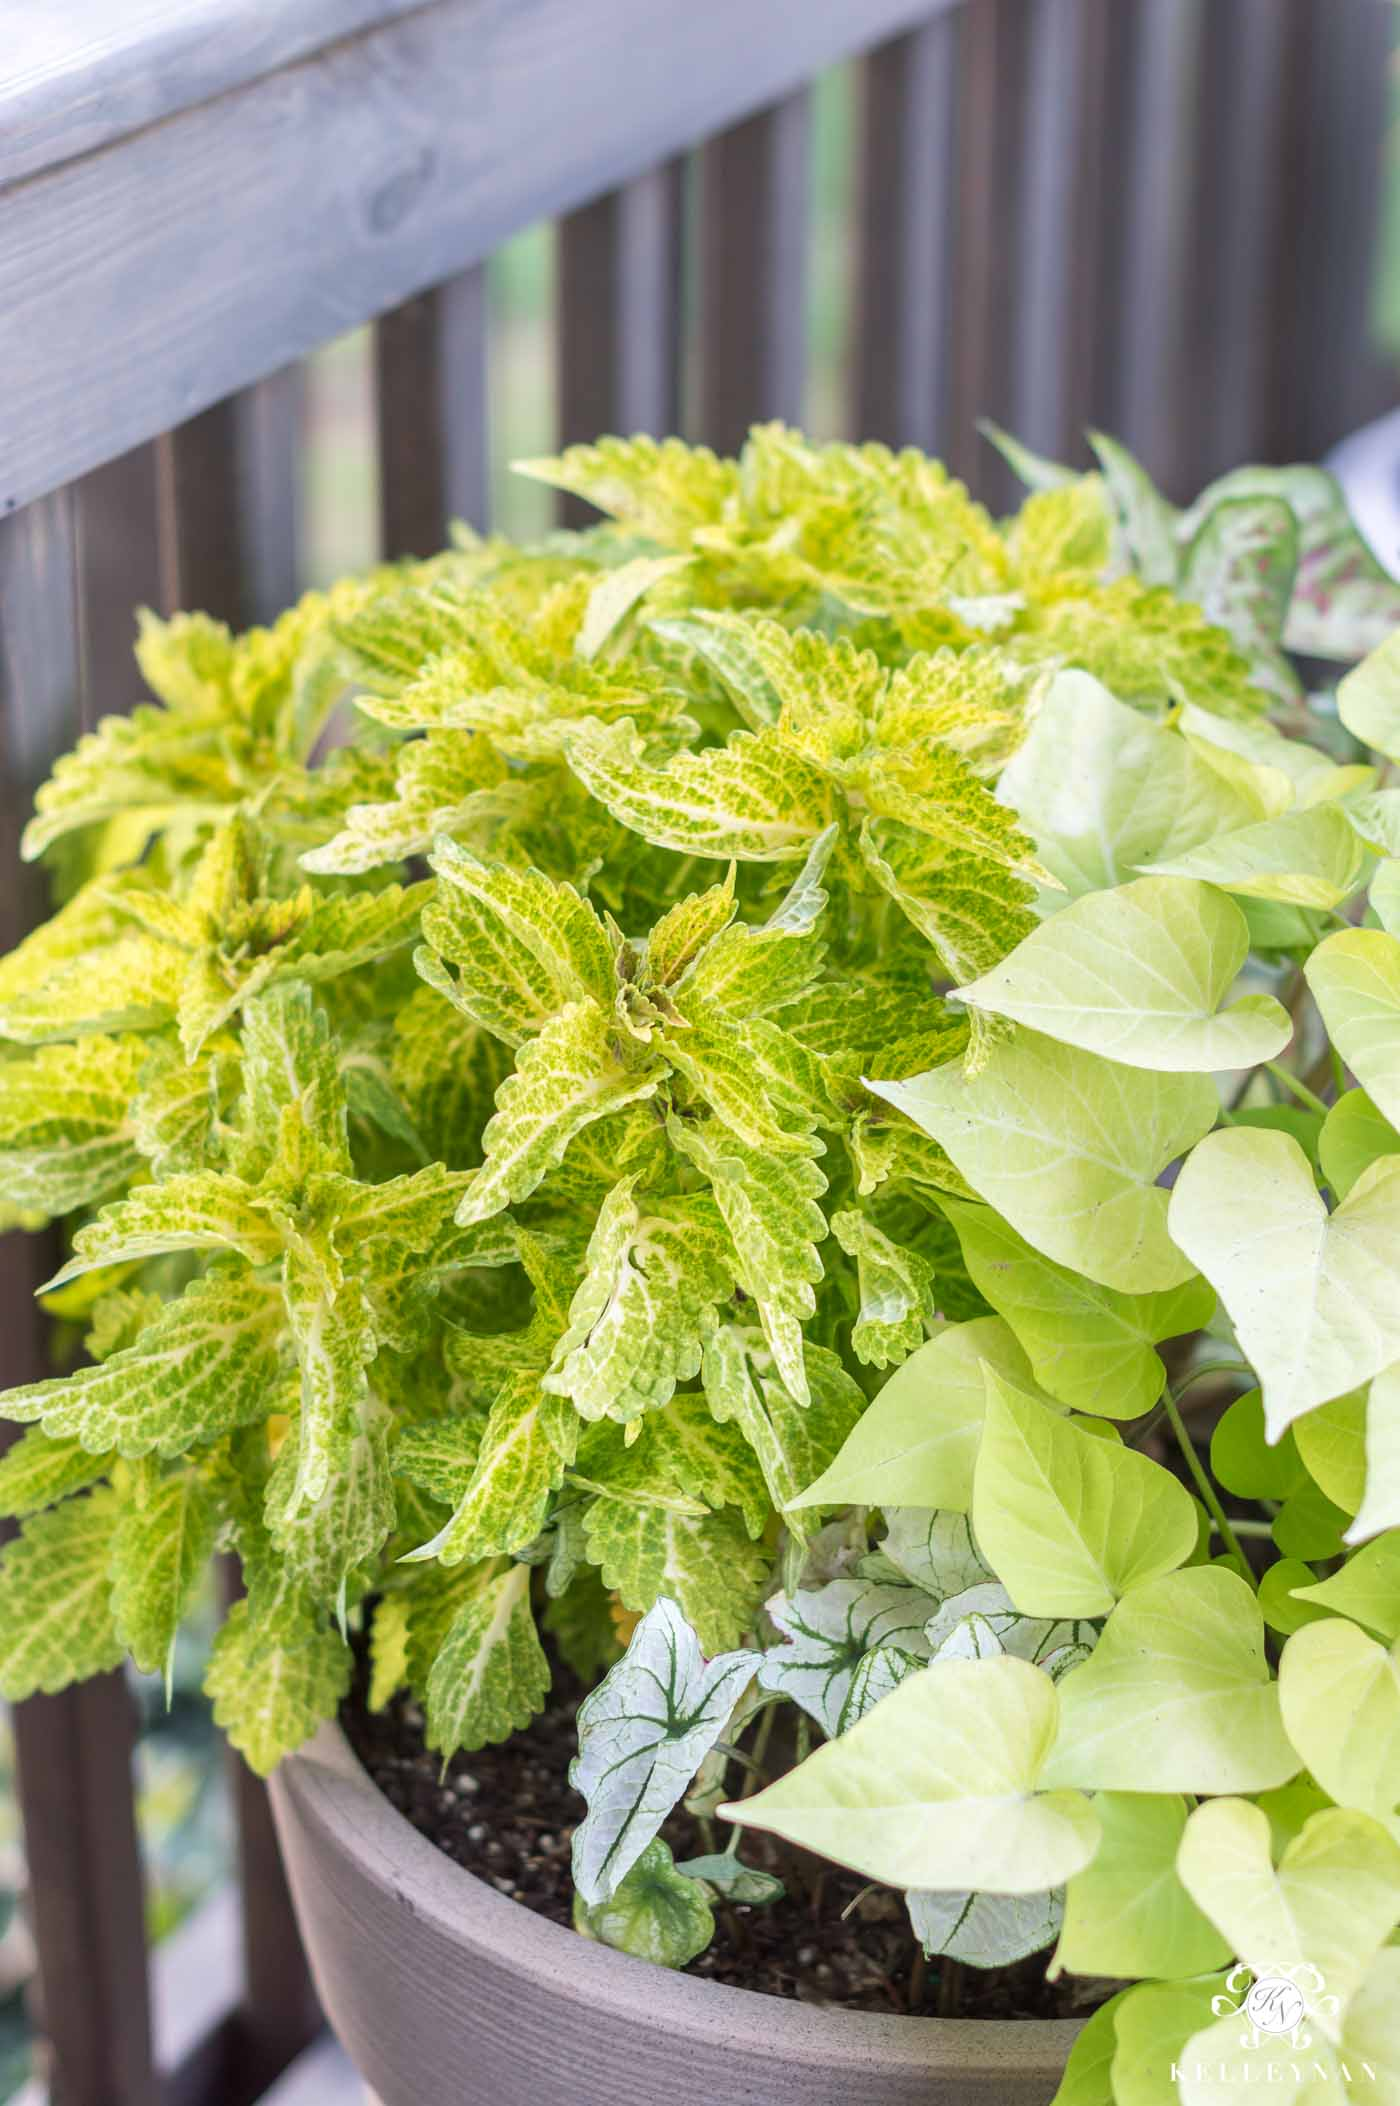 Sun coleus is a favorite green plant for the back deck in full sunlight